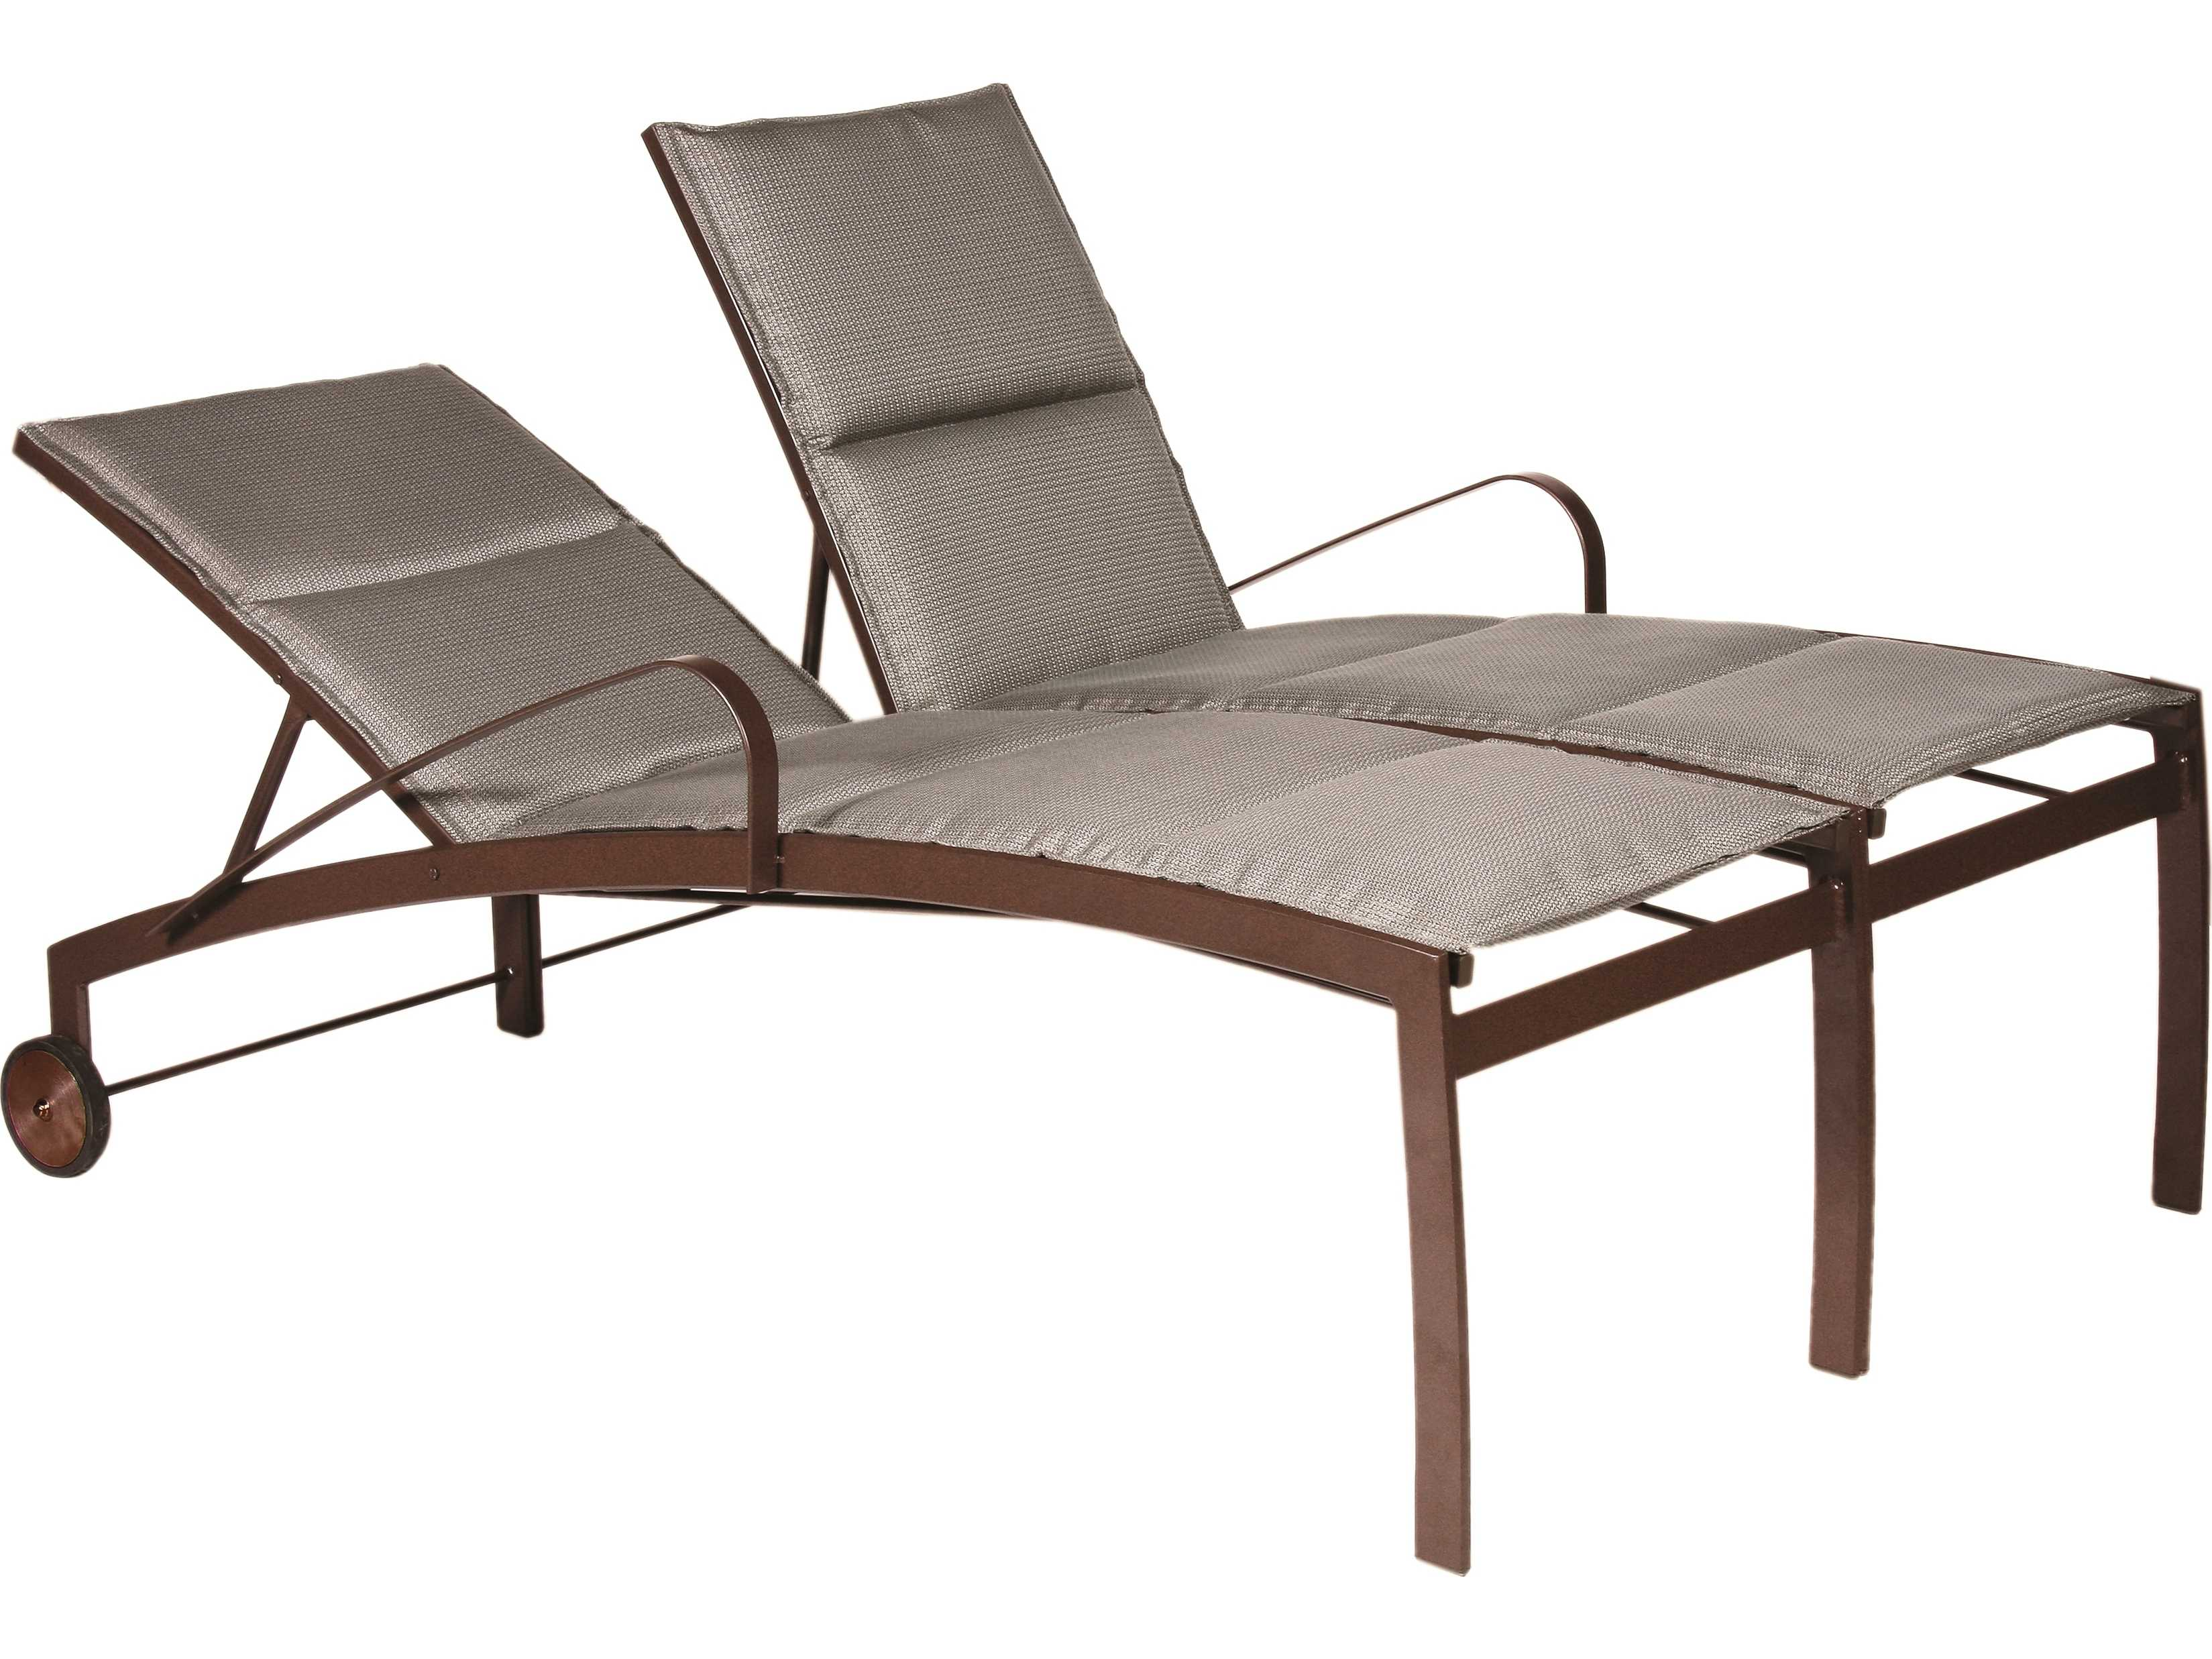 Suncoast vision sling cast aluminum adjustable chaise for Cast aluminum chaise lounge